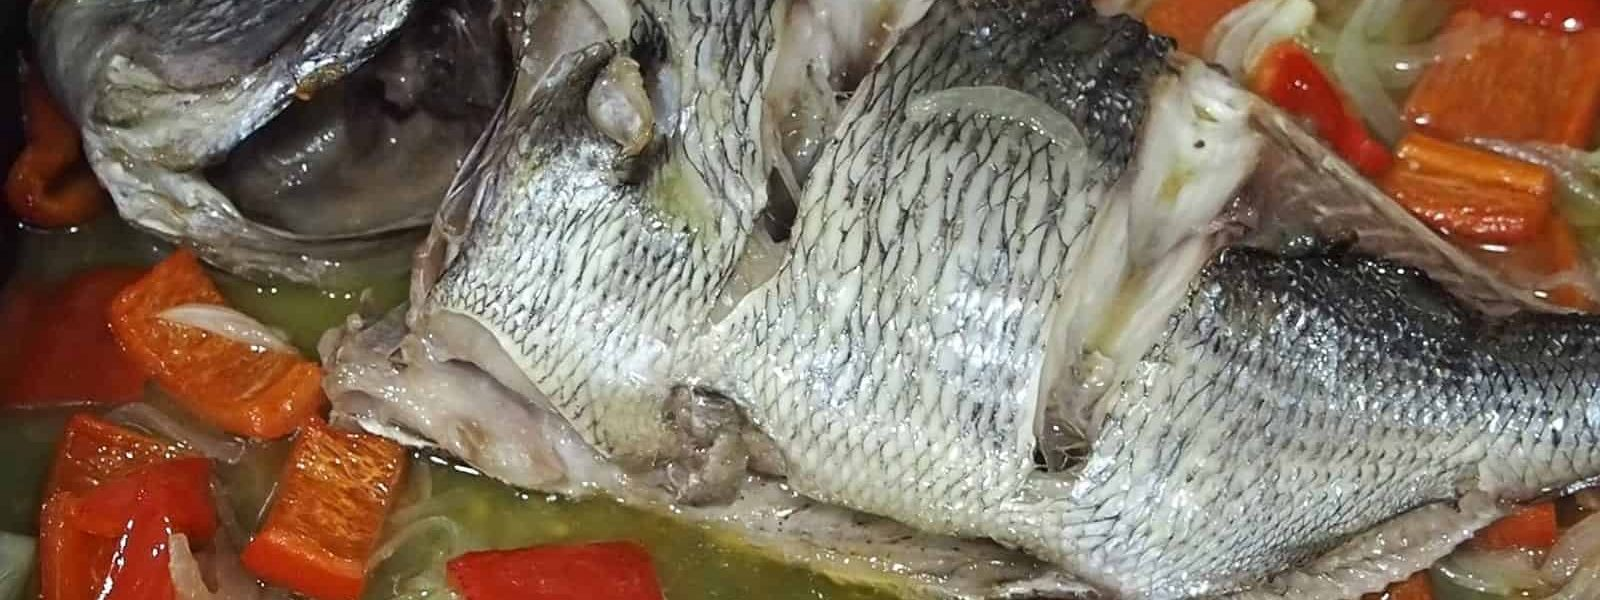 Baked sea bream with red pepper